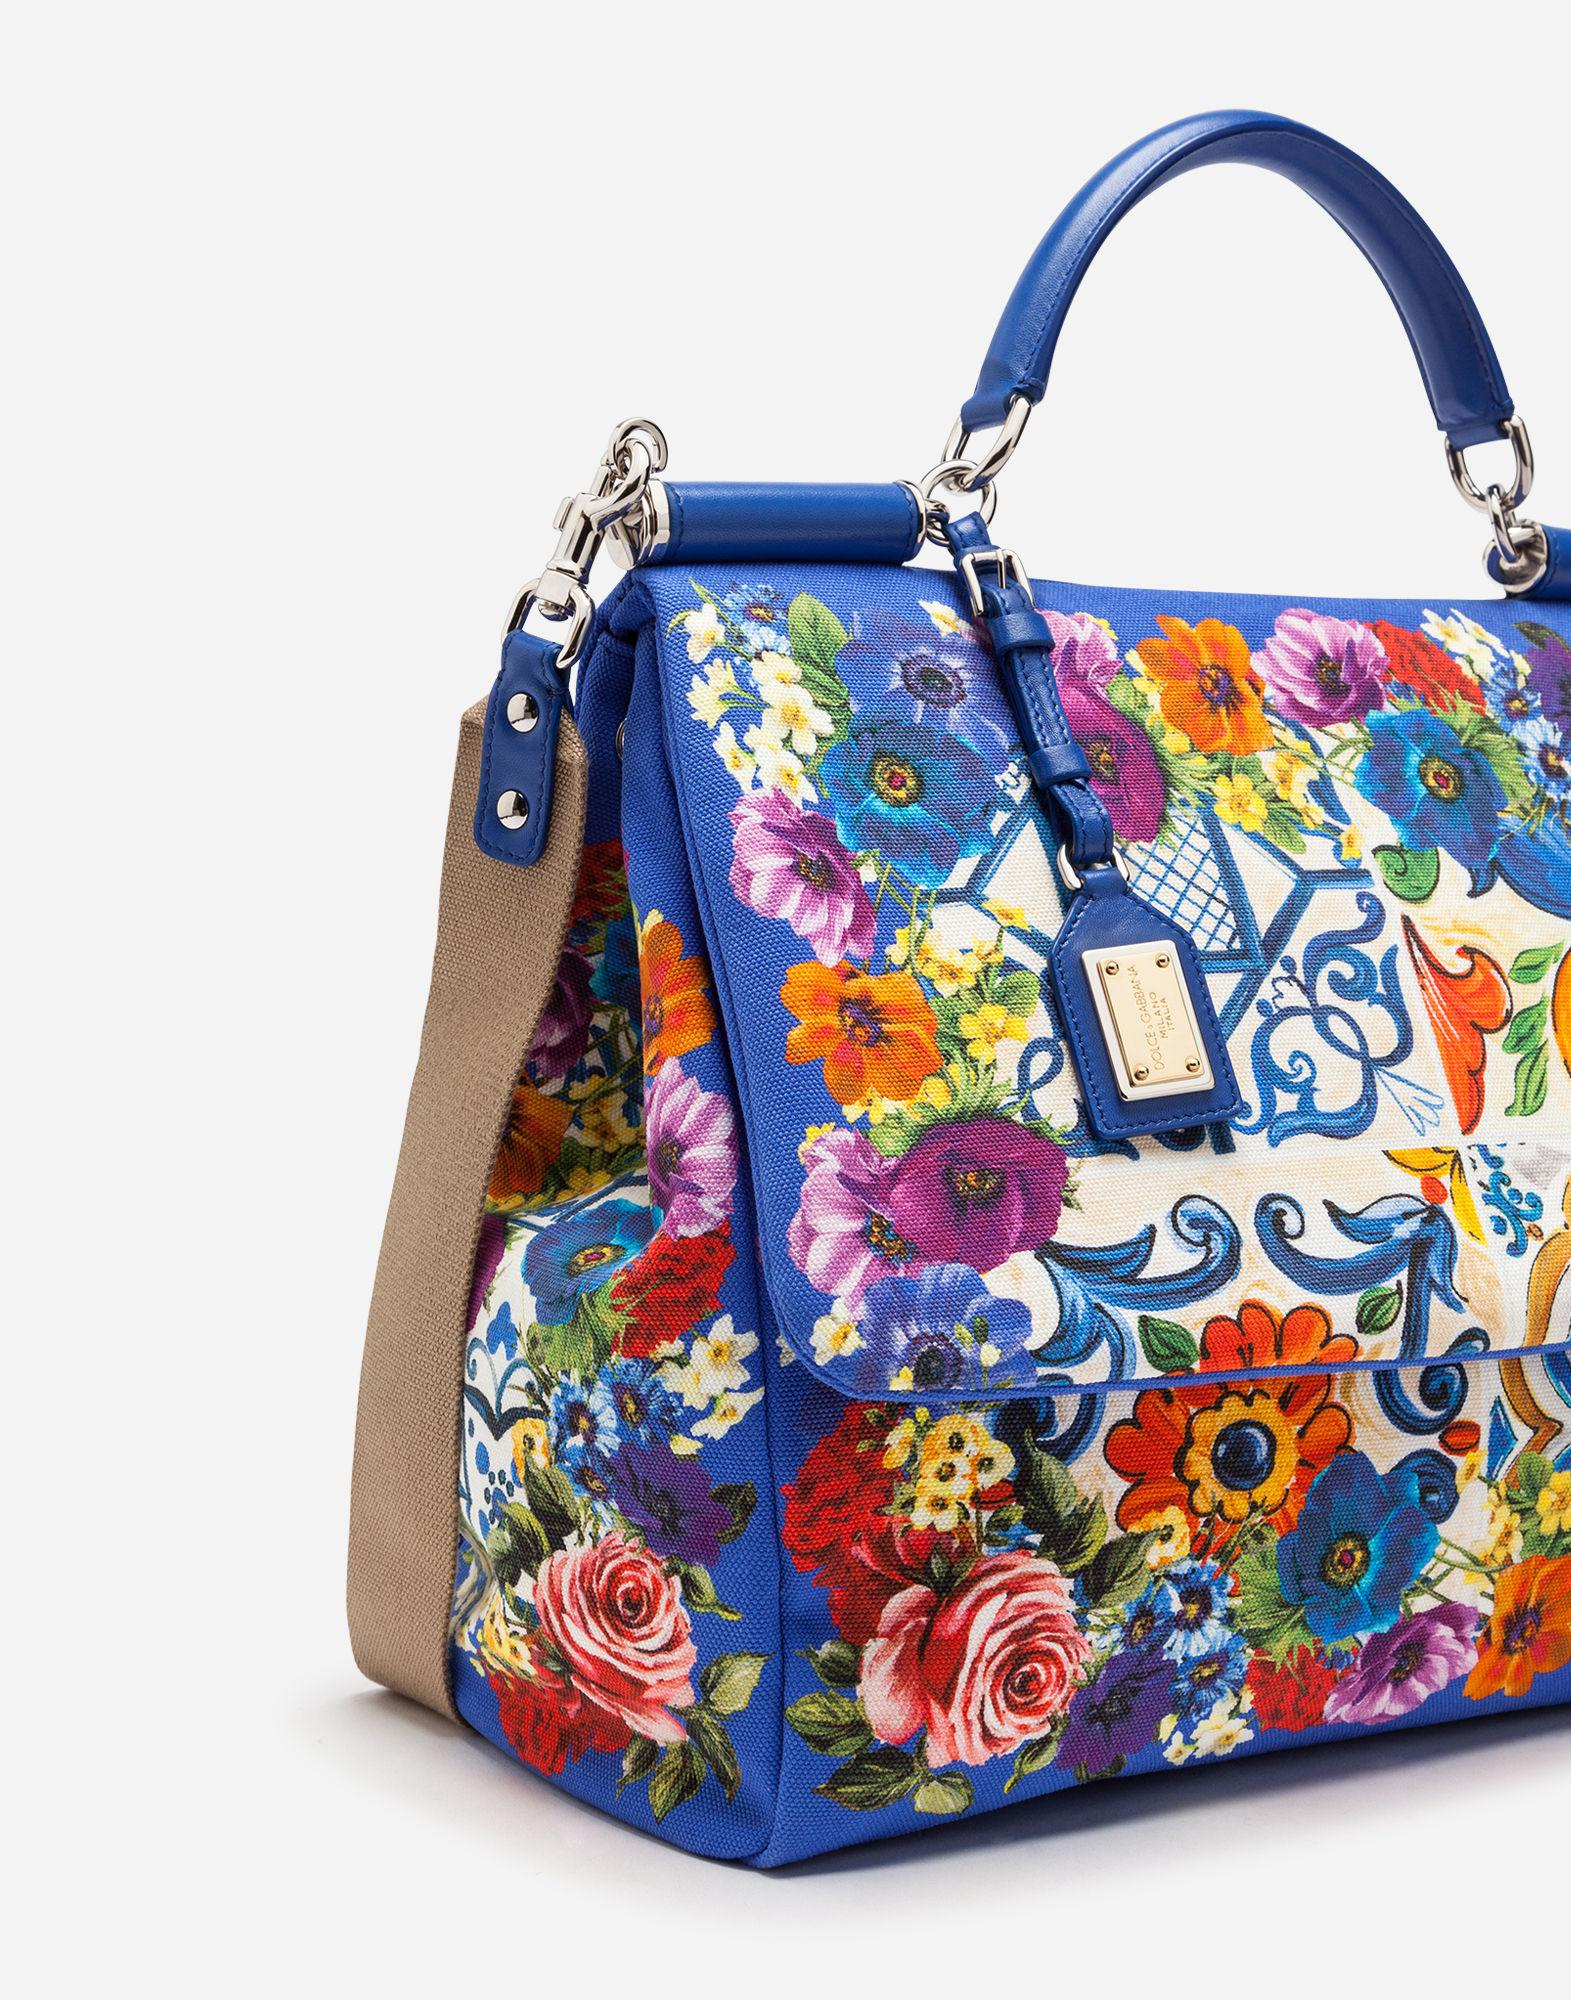 Lyst - Dolce   Gabbana Sicily Soft Bag In Majolica-print Canvas in Blue 96baeba6760e3